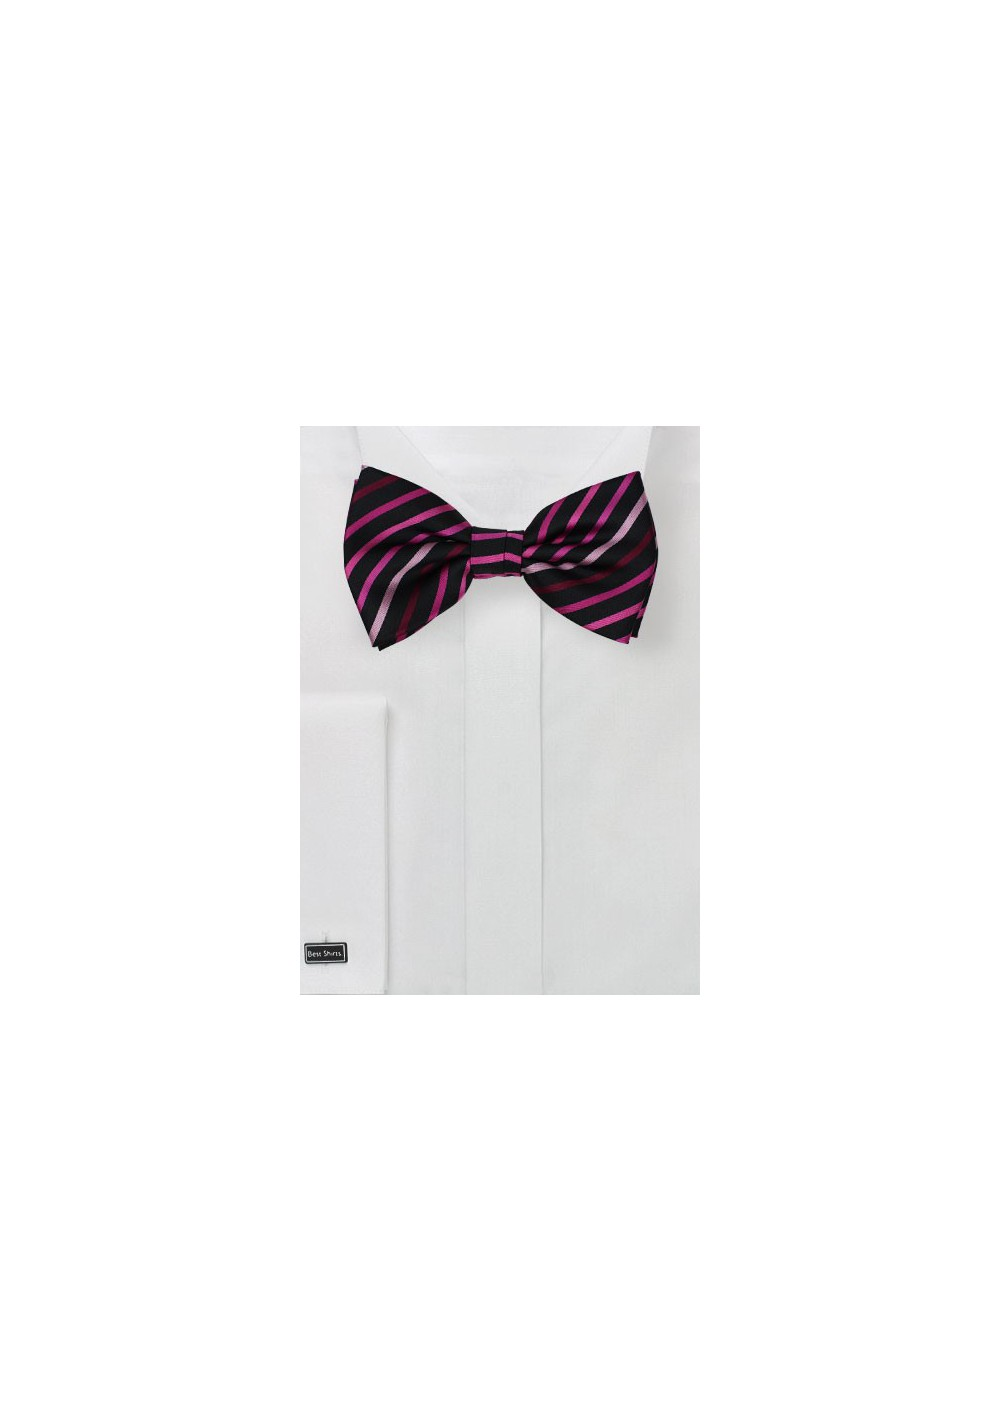 Black Bow Tie with Pink Stripes